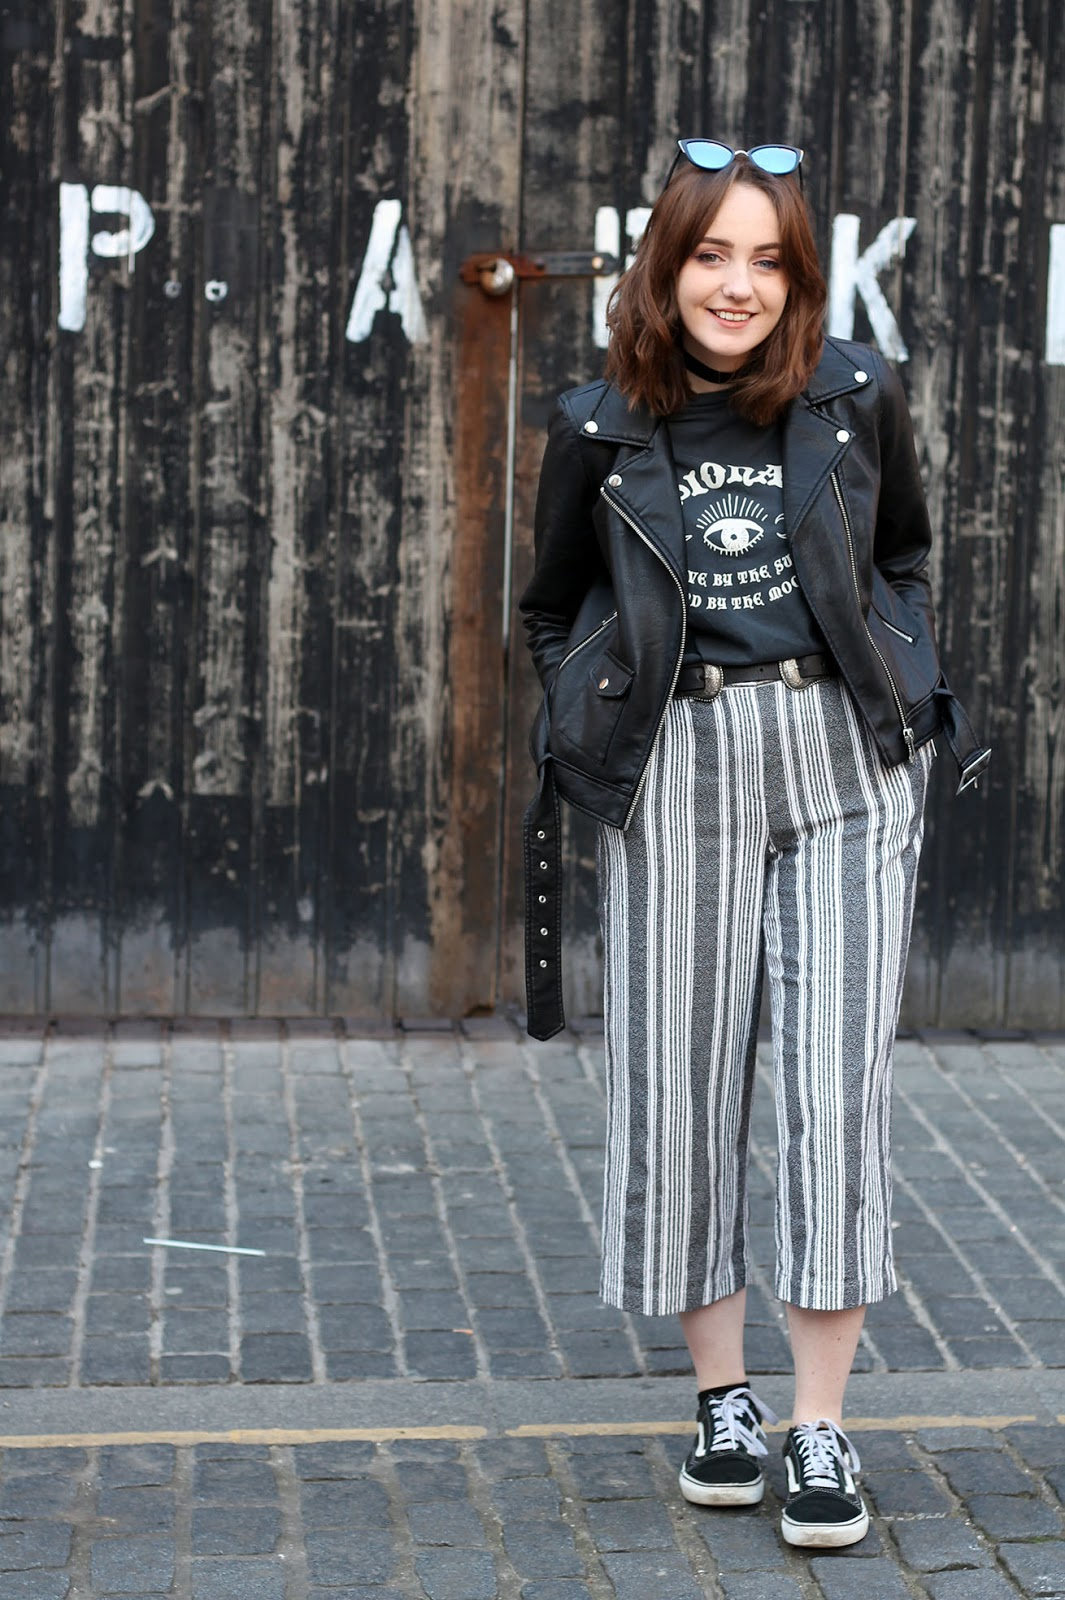 What to wear to a gig: Liverpool fashion blogger outfit